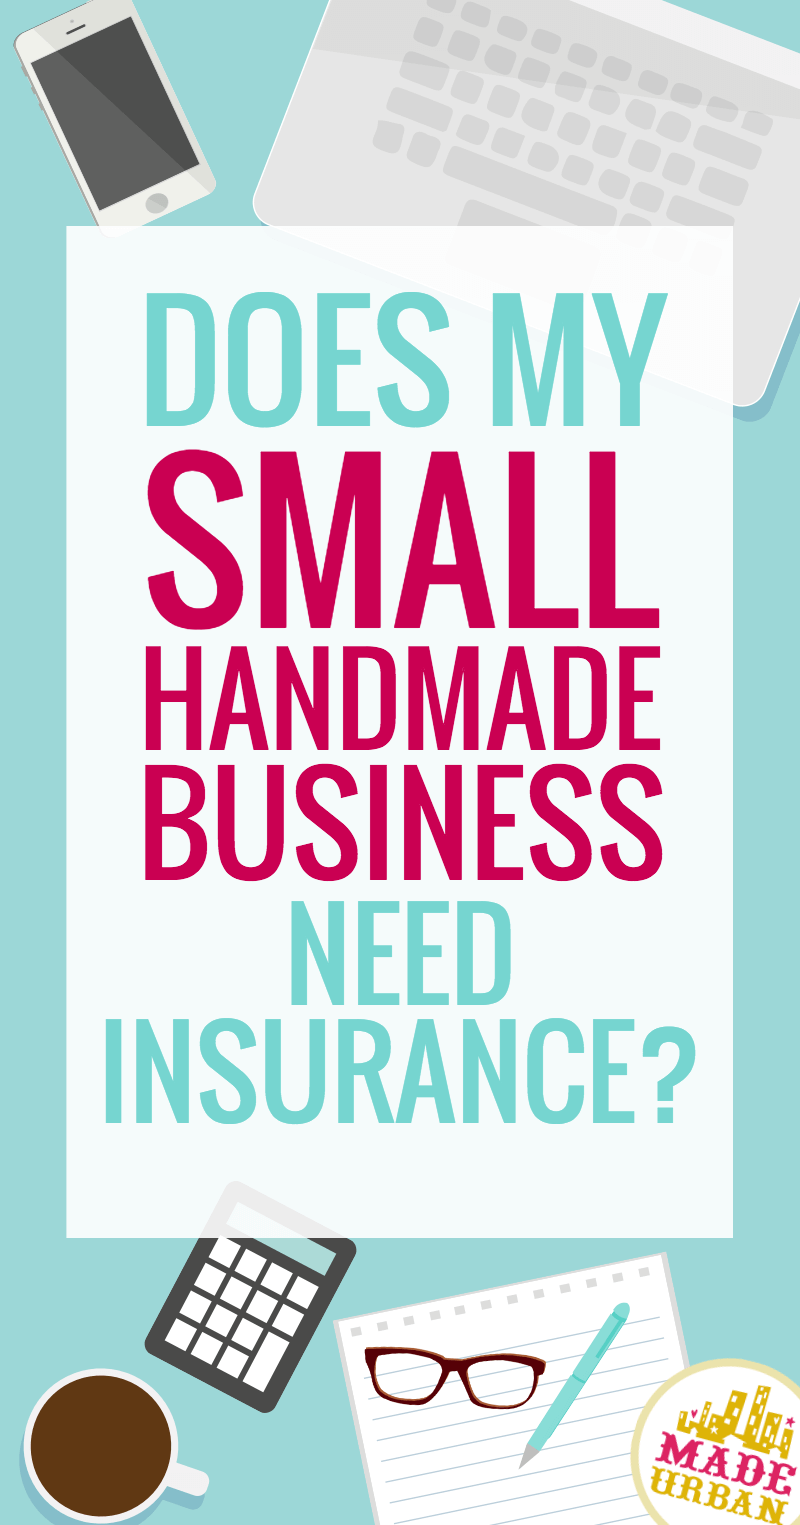 Does your Small Handmade Business Need Insurance?